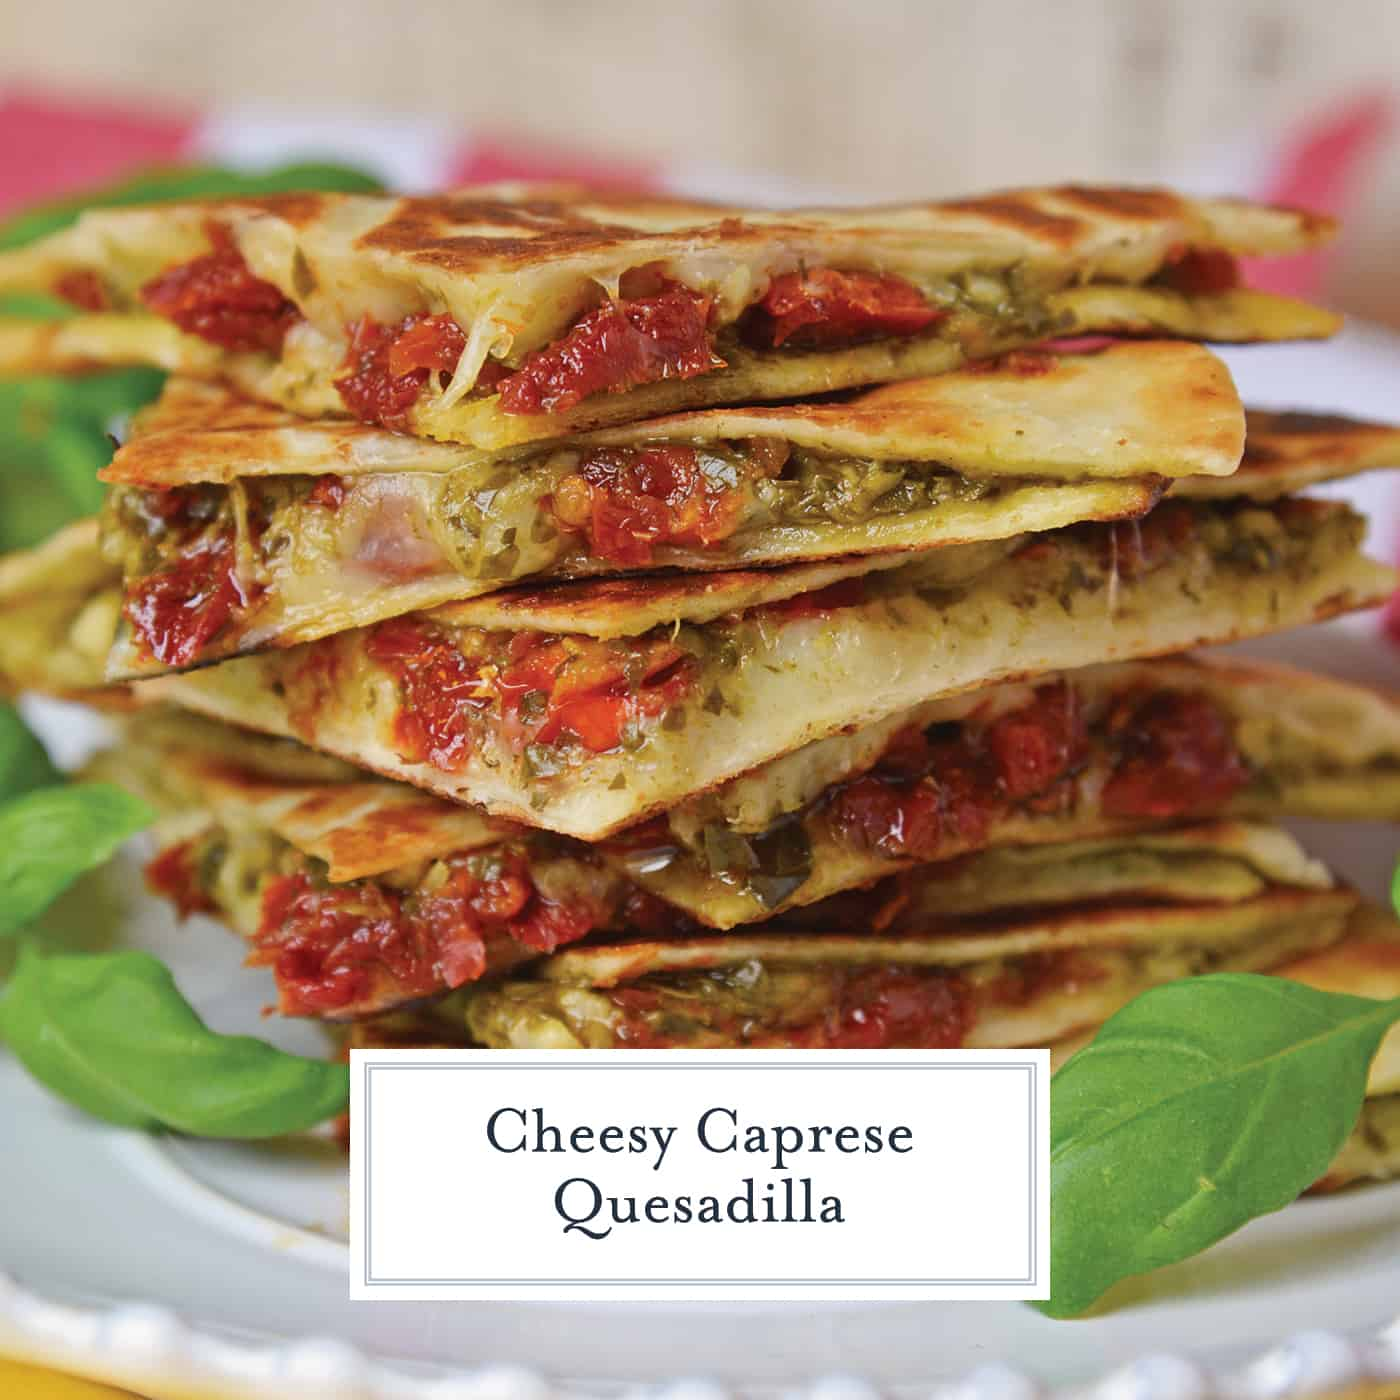 Caprese Quesadillas combine homemade pesto sauce with sun dried tomatoes and gooey mozzarella cheese. Serve for lunch, dinner or even as a party appetizer! #quesadillarecipe #capresequesadilla www.savoryexperiments.com